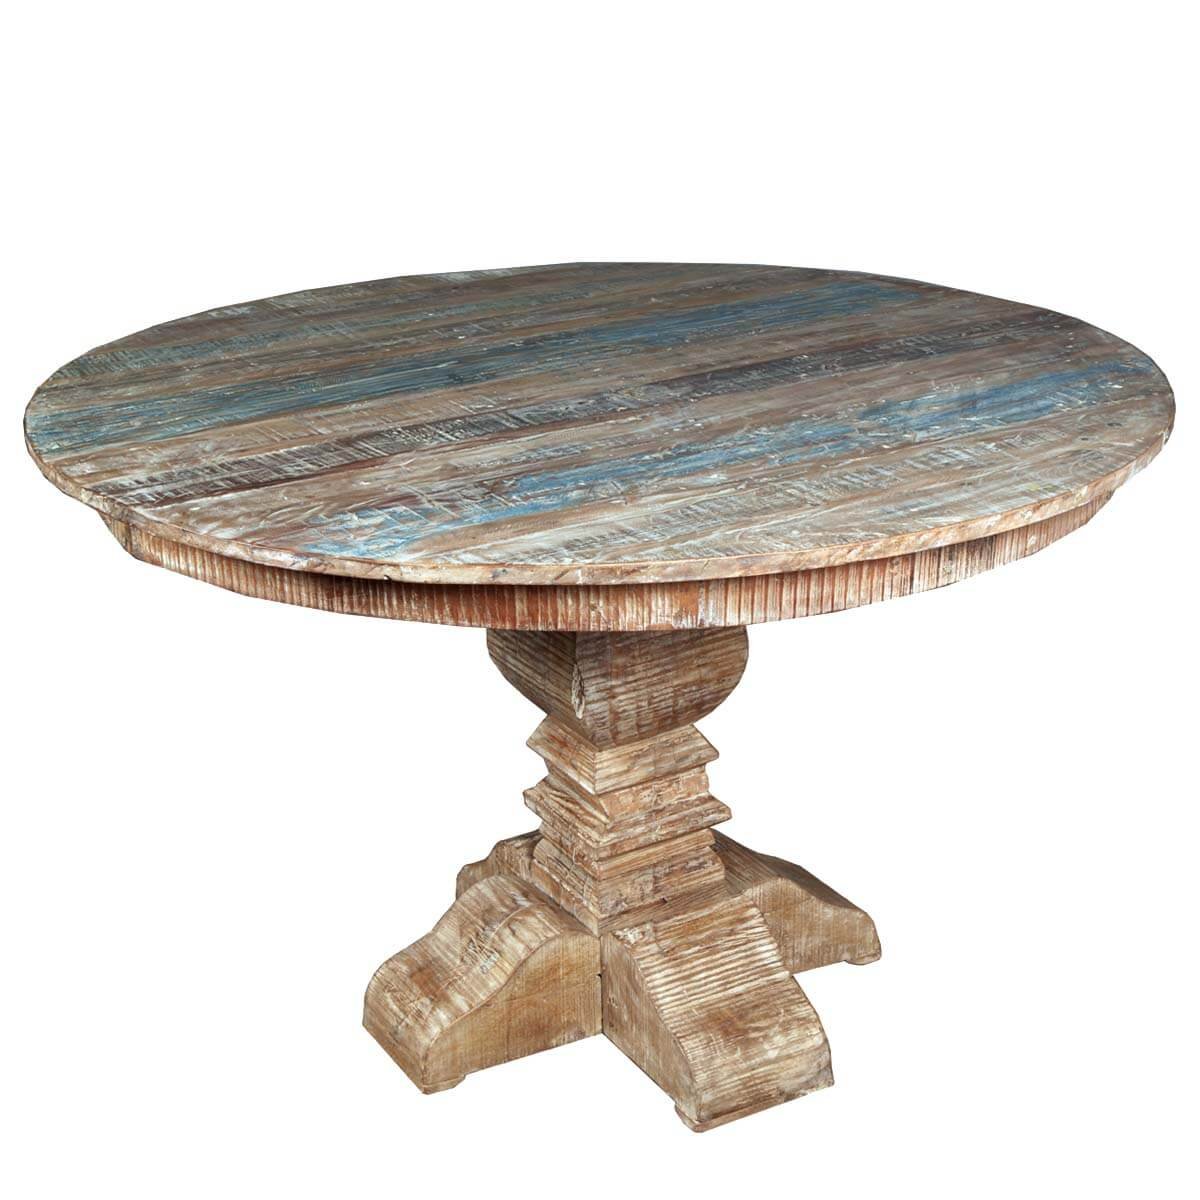 Round Wood Dining Table: French Quarter Rustic Reclaimed Wood Round Dining Table